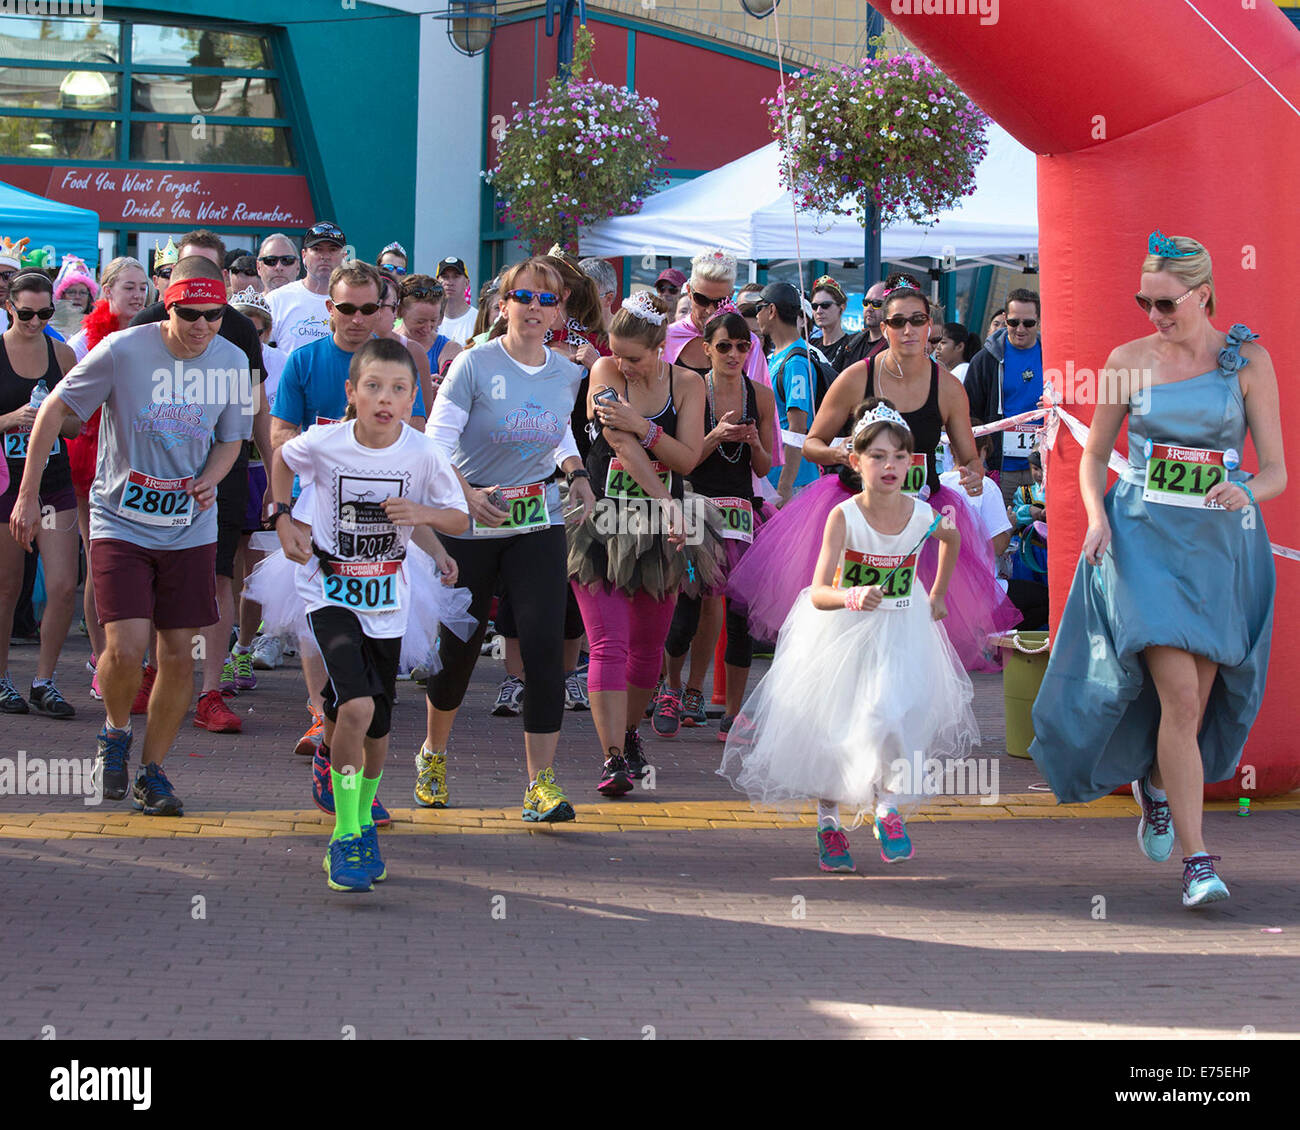 Calgary, Canada. 7th September, 2014.  Racers dress up as royalty but with running shoes instead of glass slippers - Stock Image